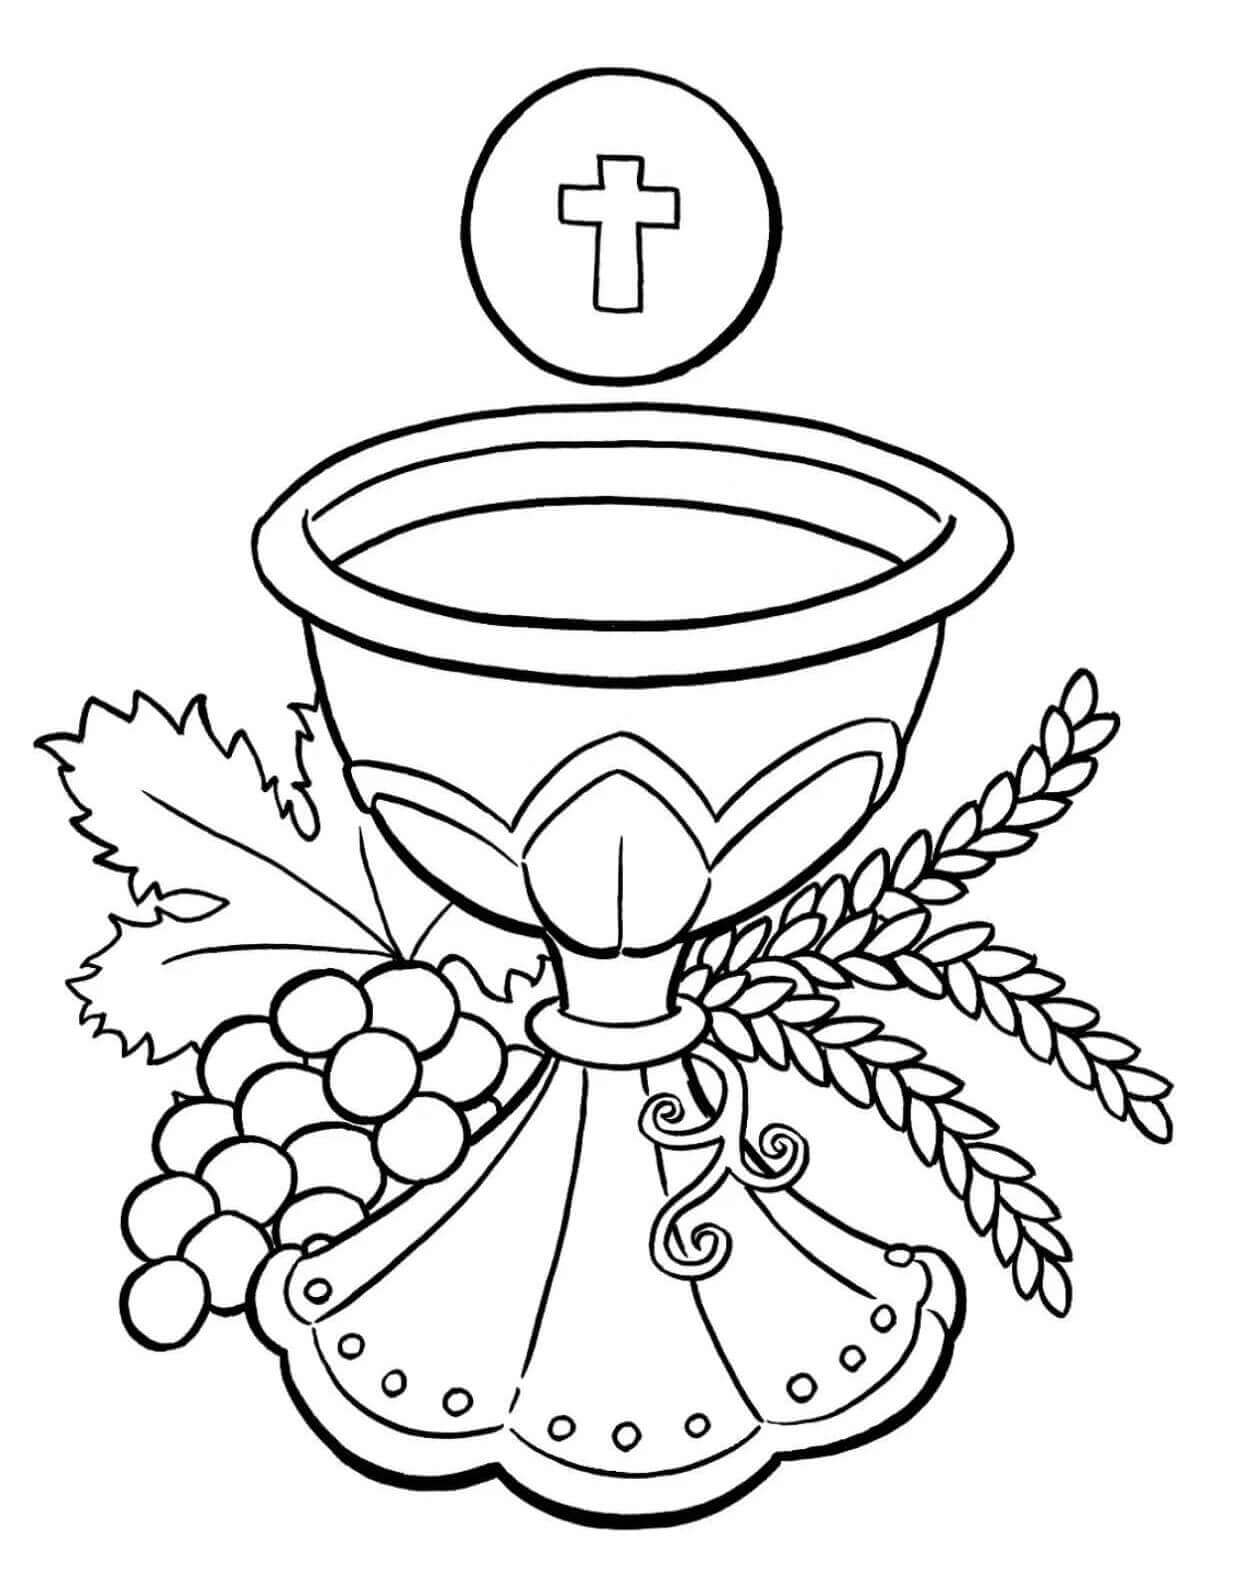 Coloring Page For Catholic Schools Week